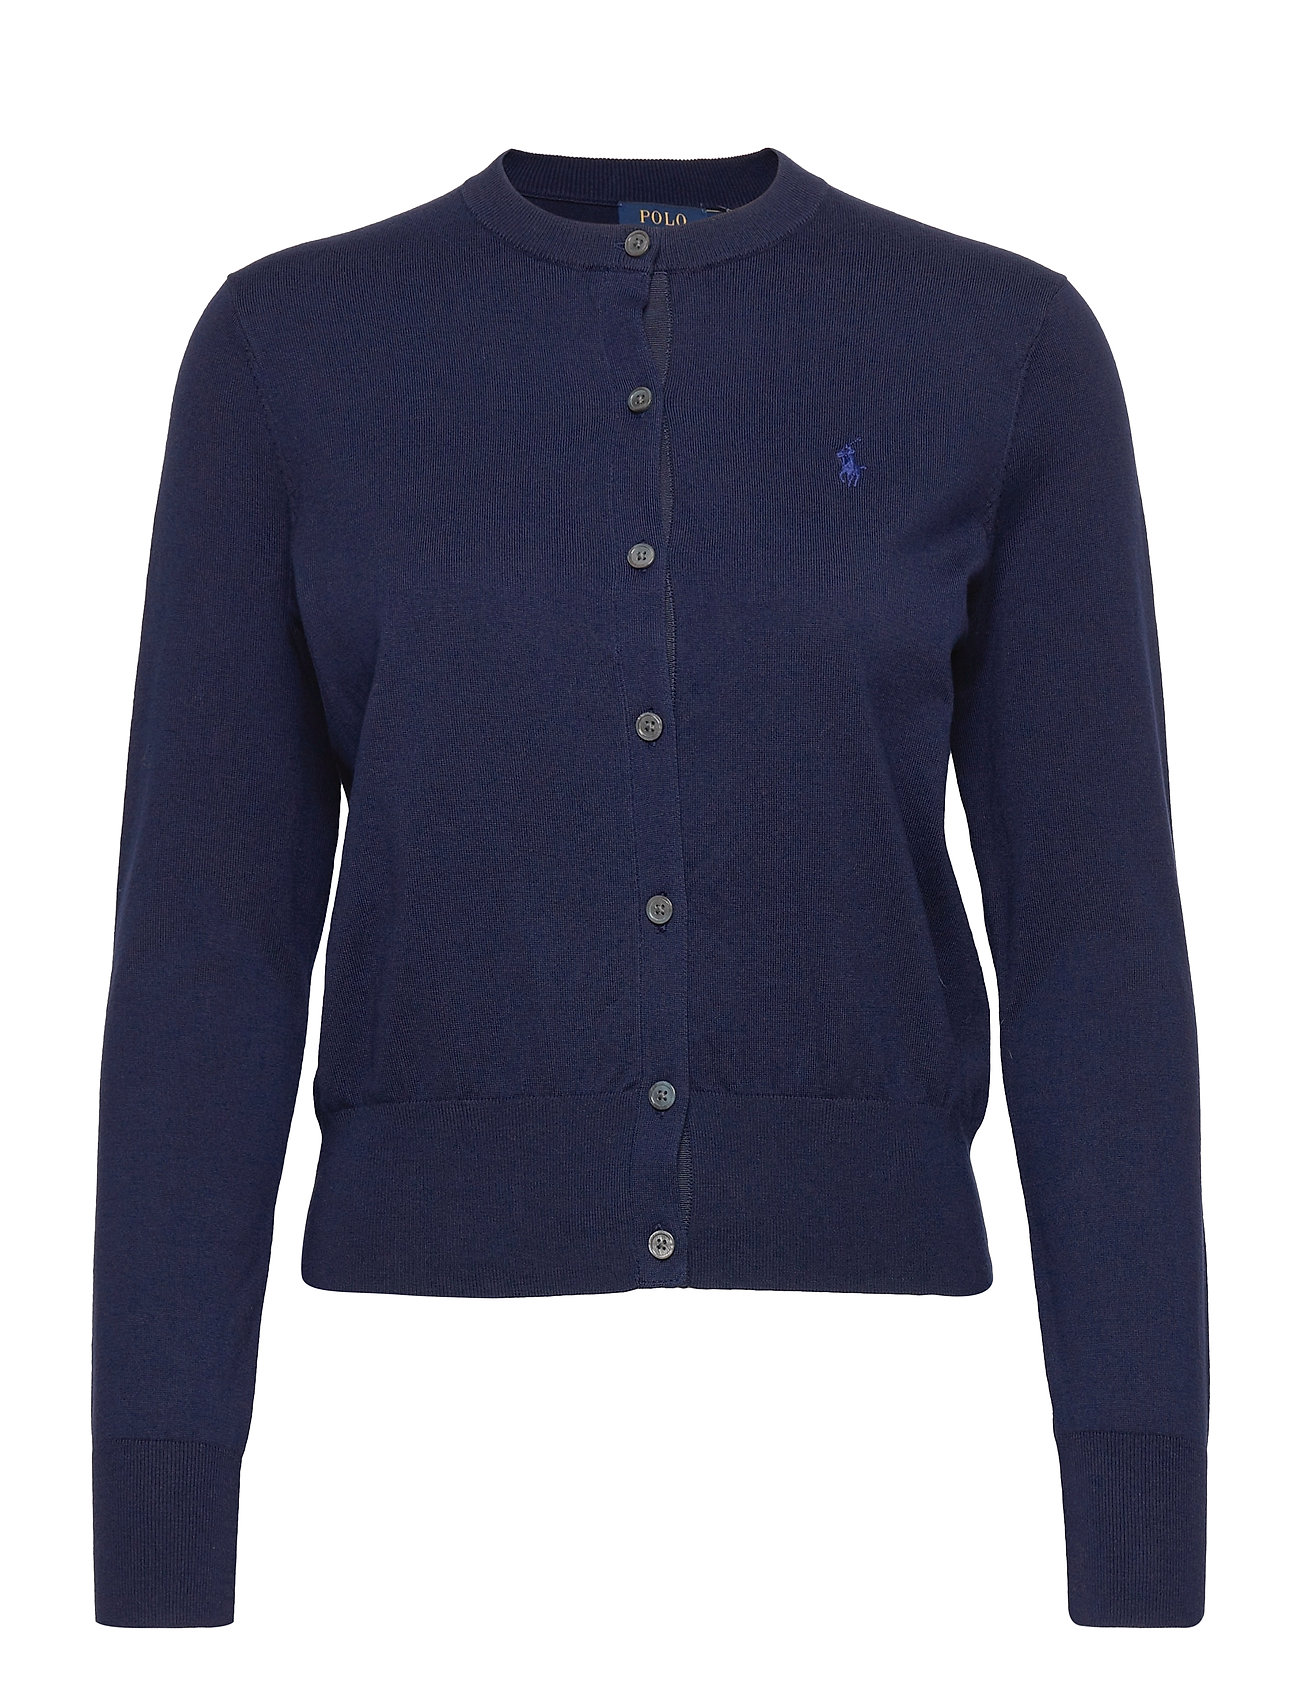 Polo Ralph Lauren Cotton Cardigan - BRIGHT NAVY